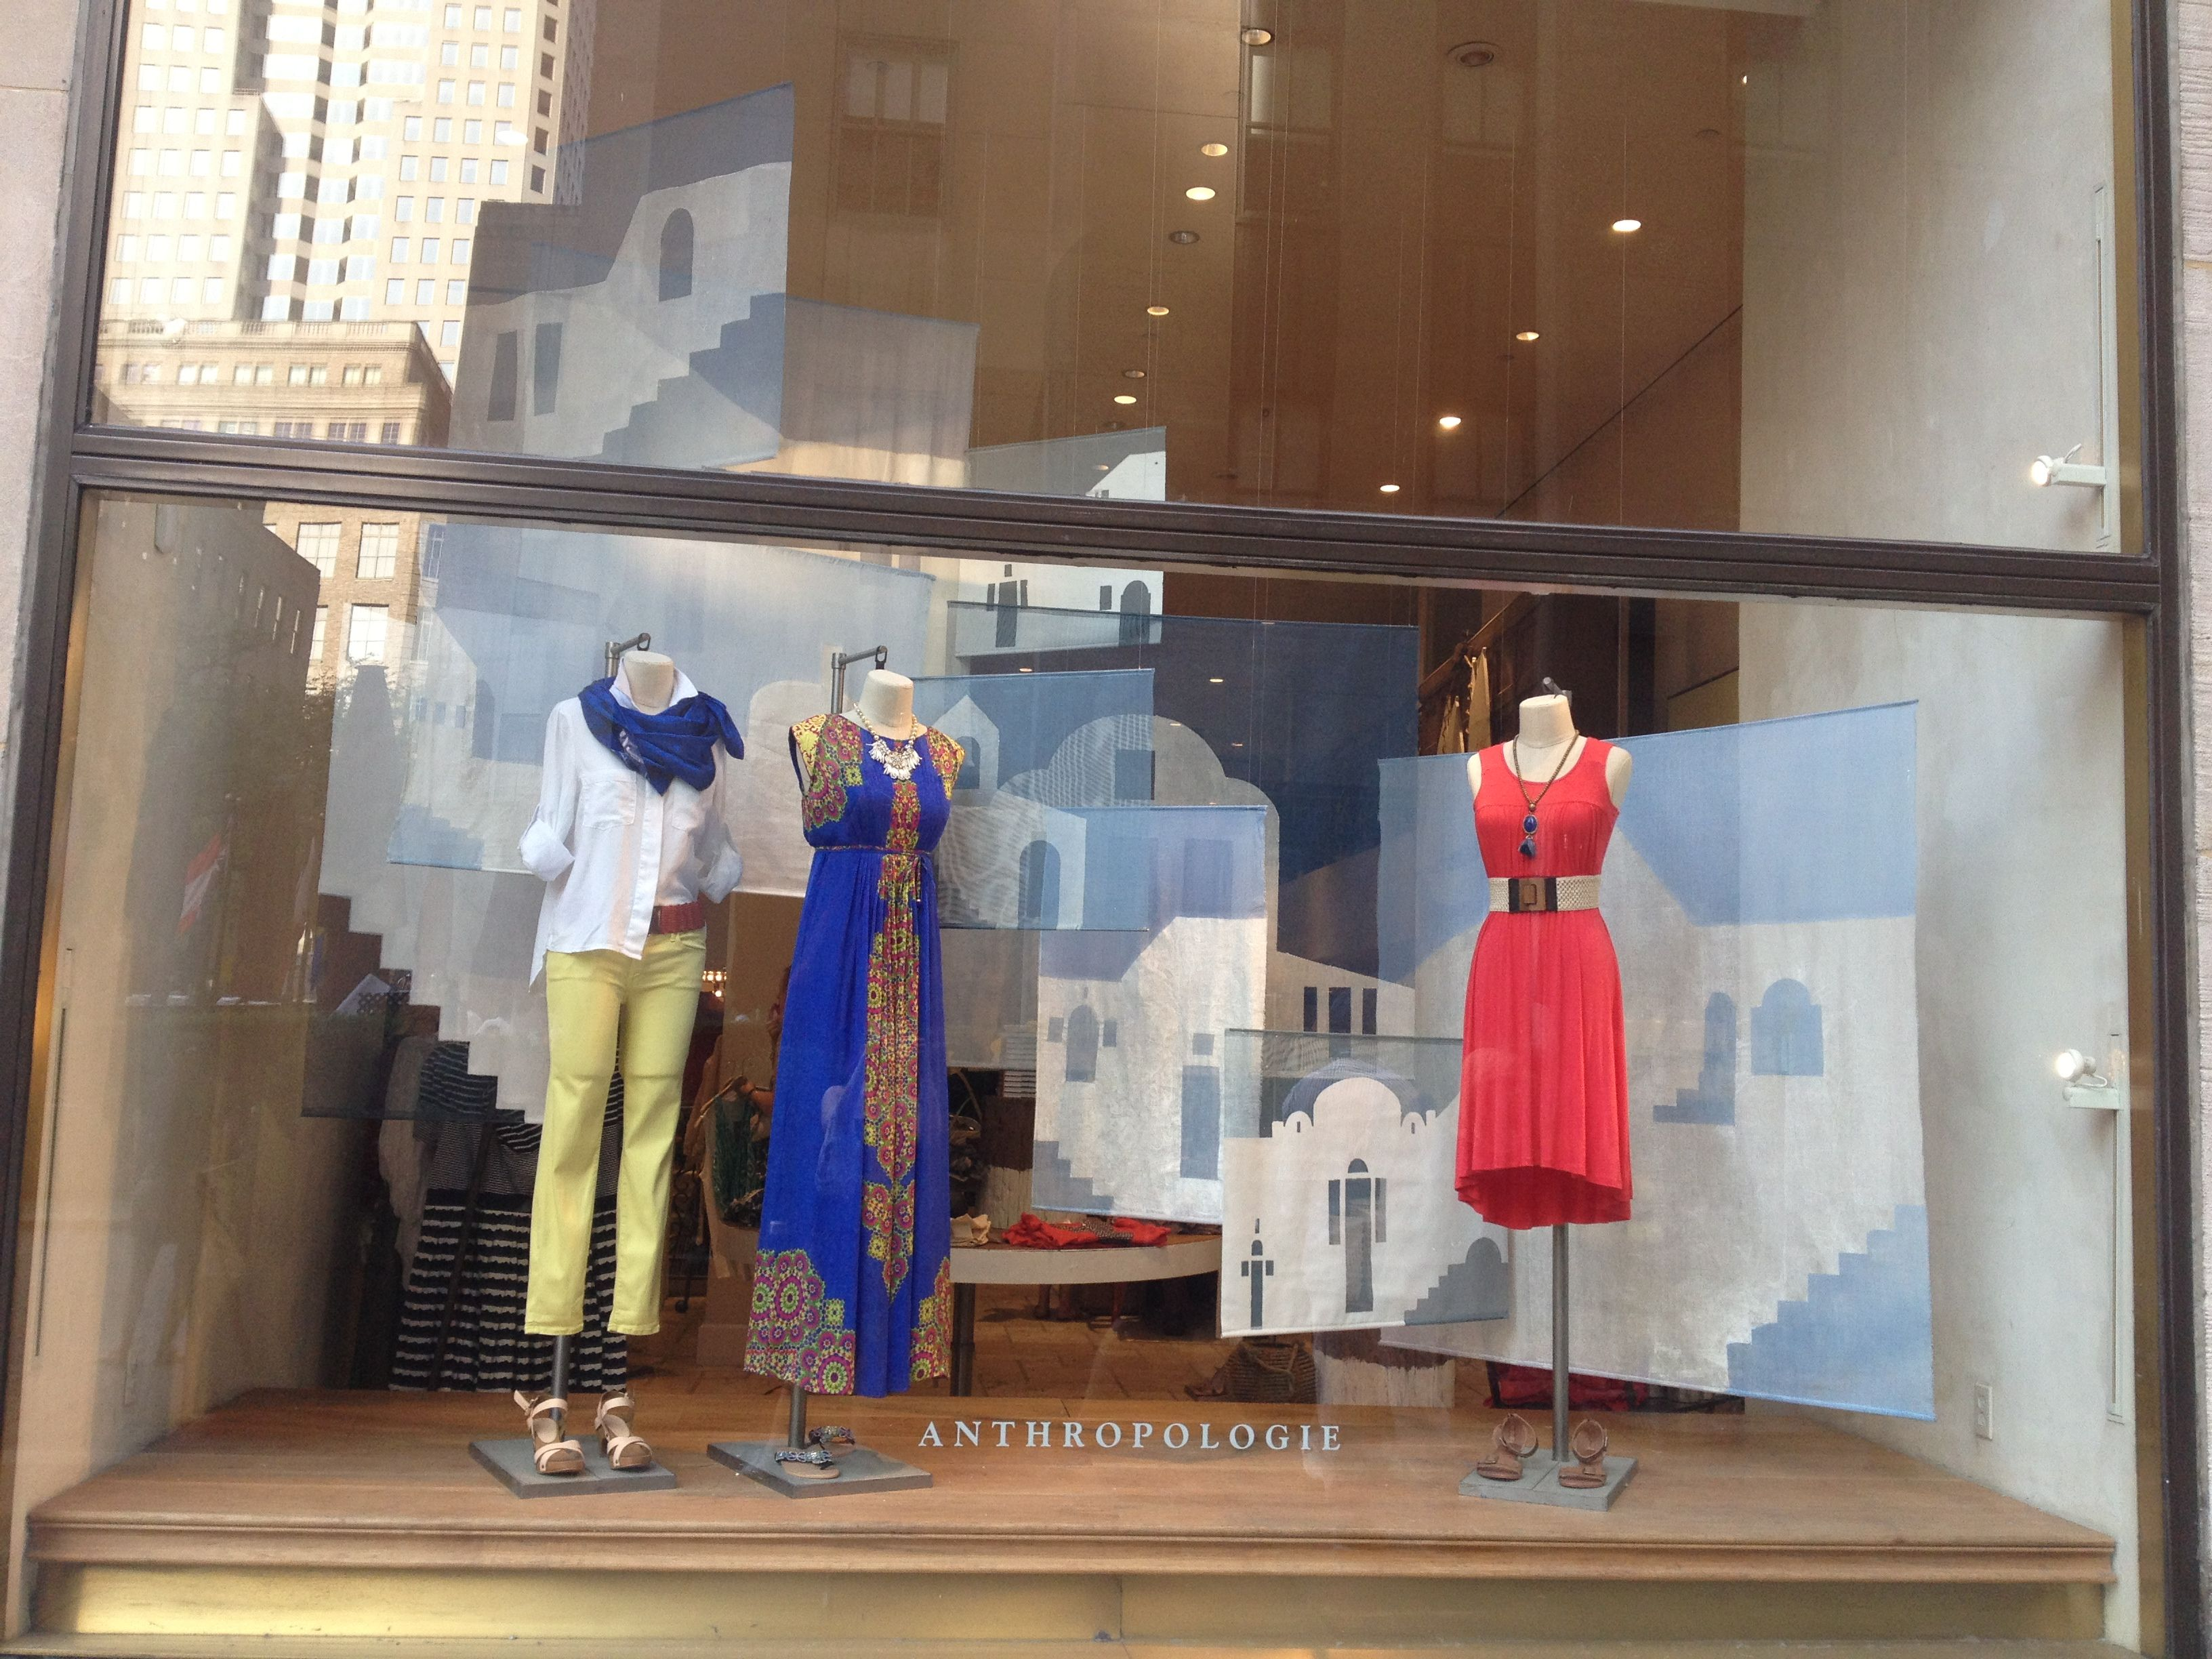 Anthropologie | Rockefeller Plaza, NYC June 2013